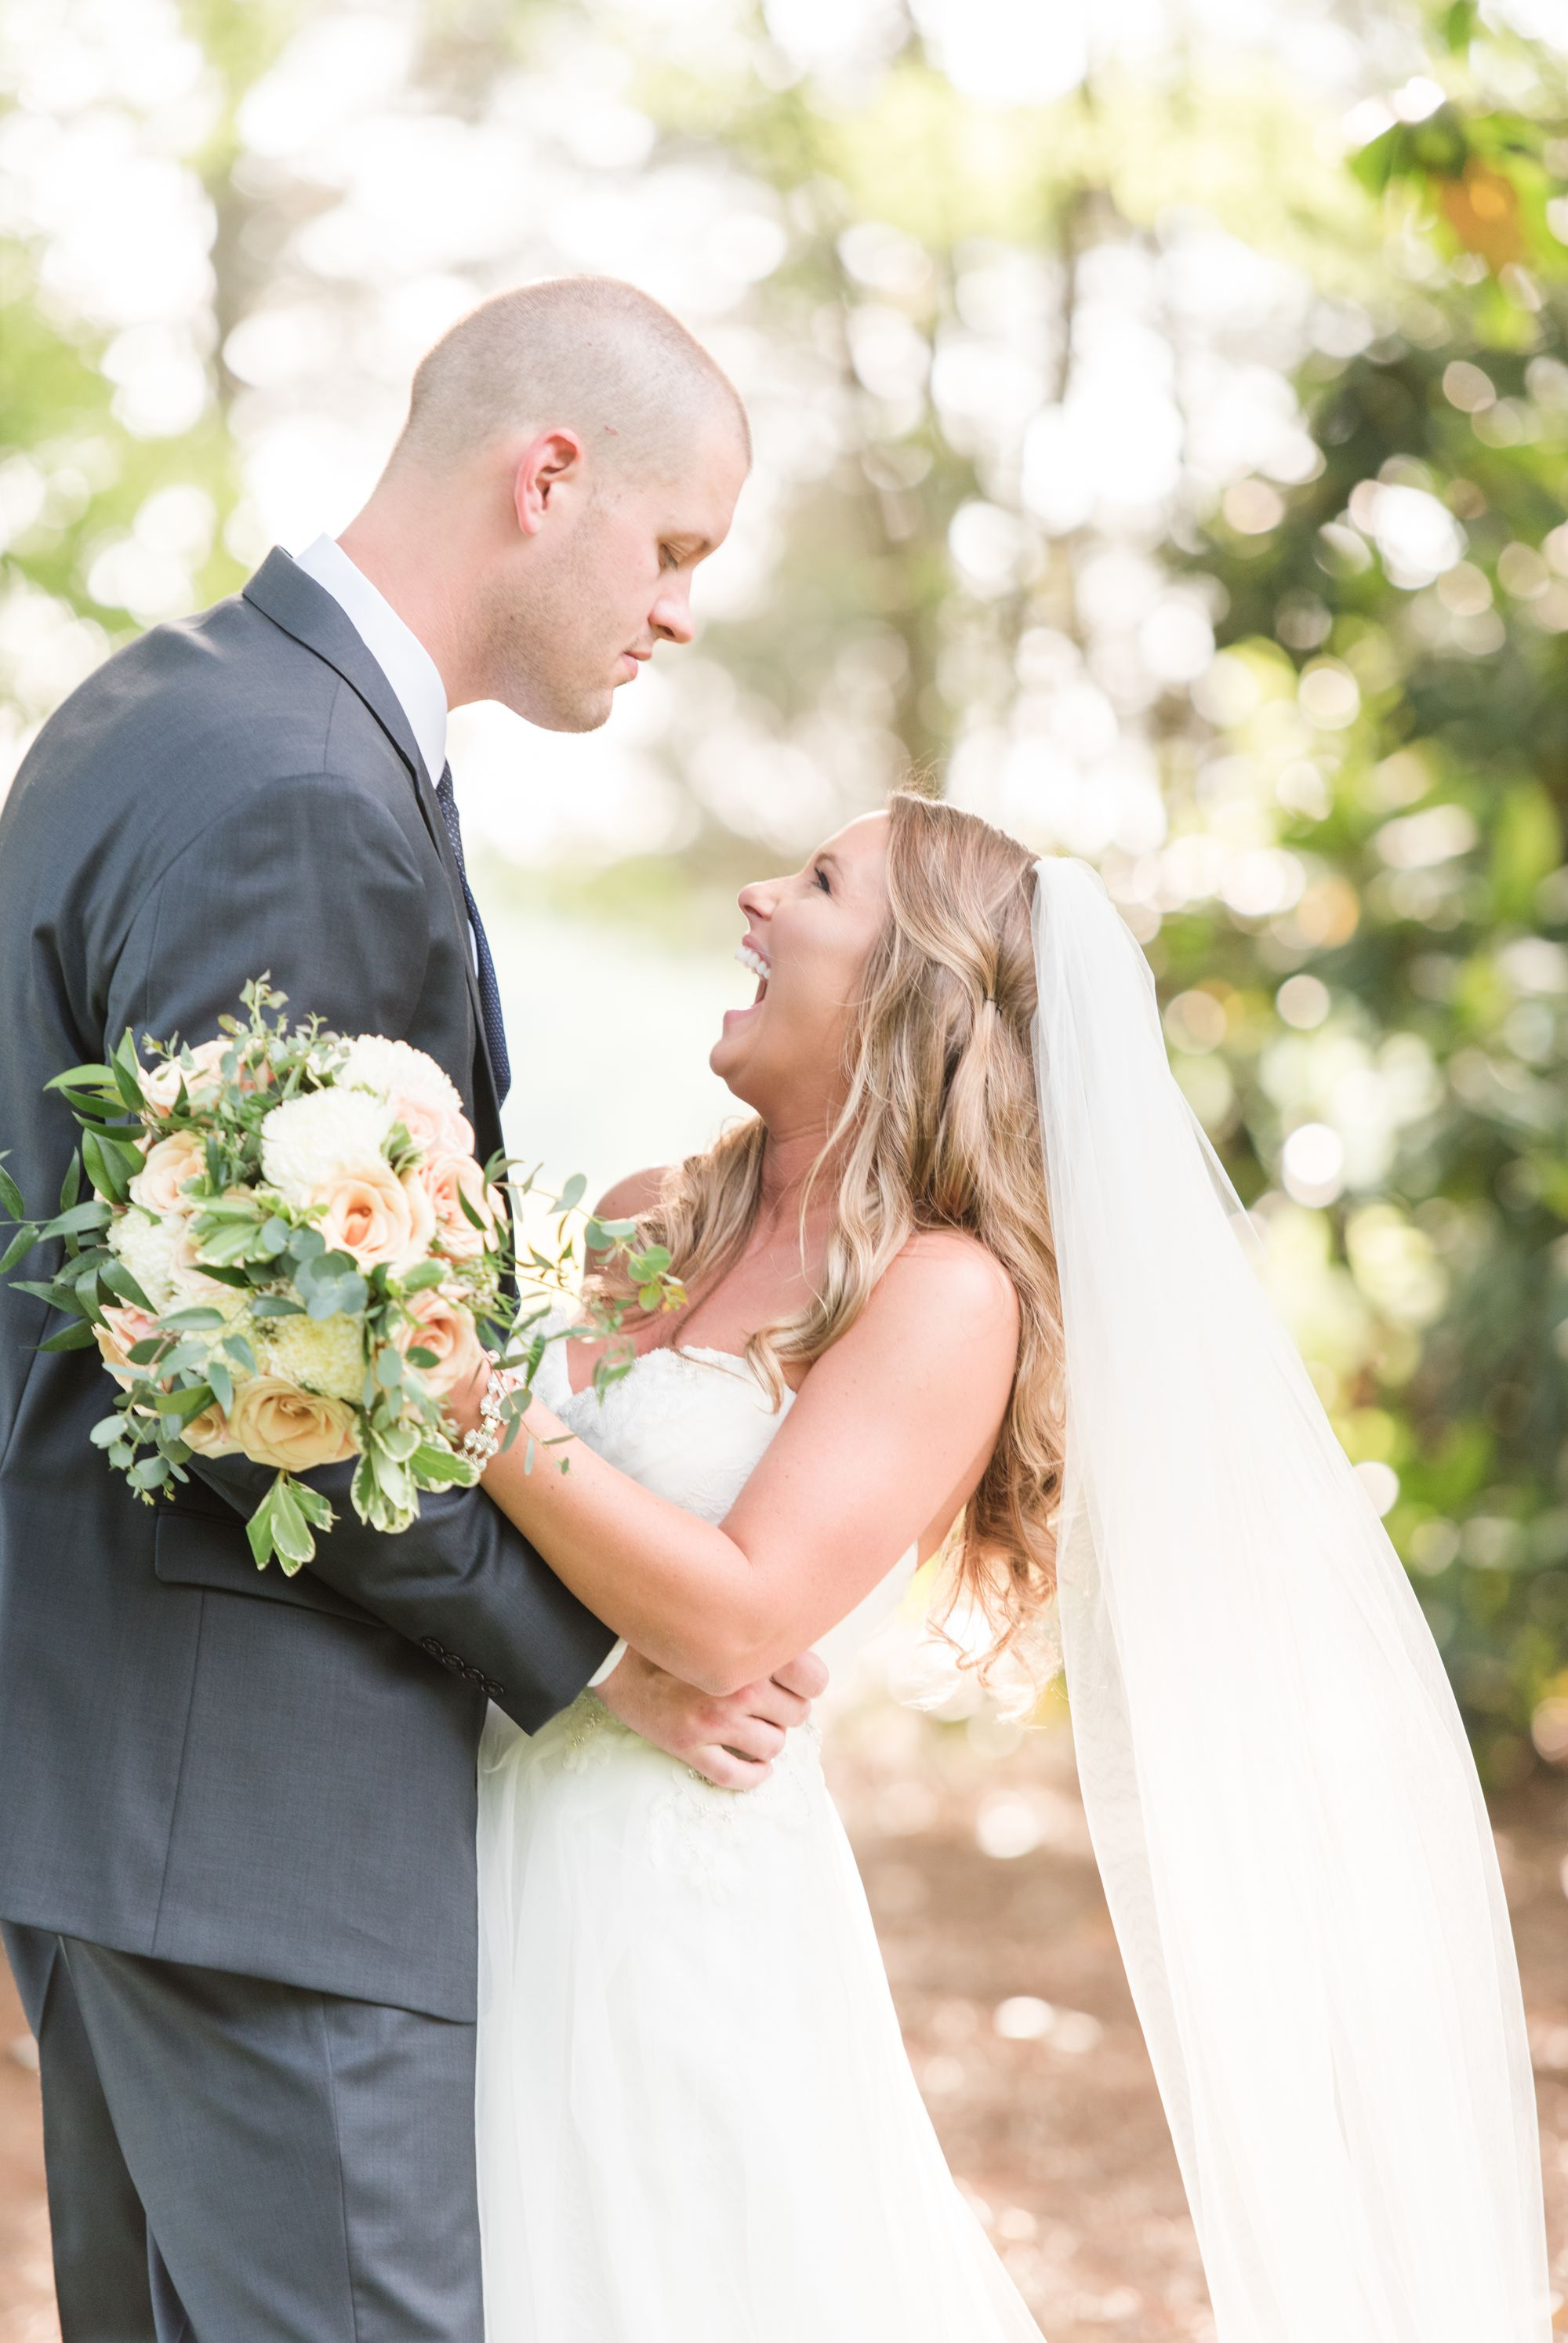 beaver-dam-house-davidson-nc-wedding-photos 77